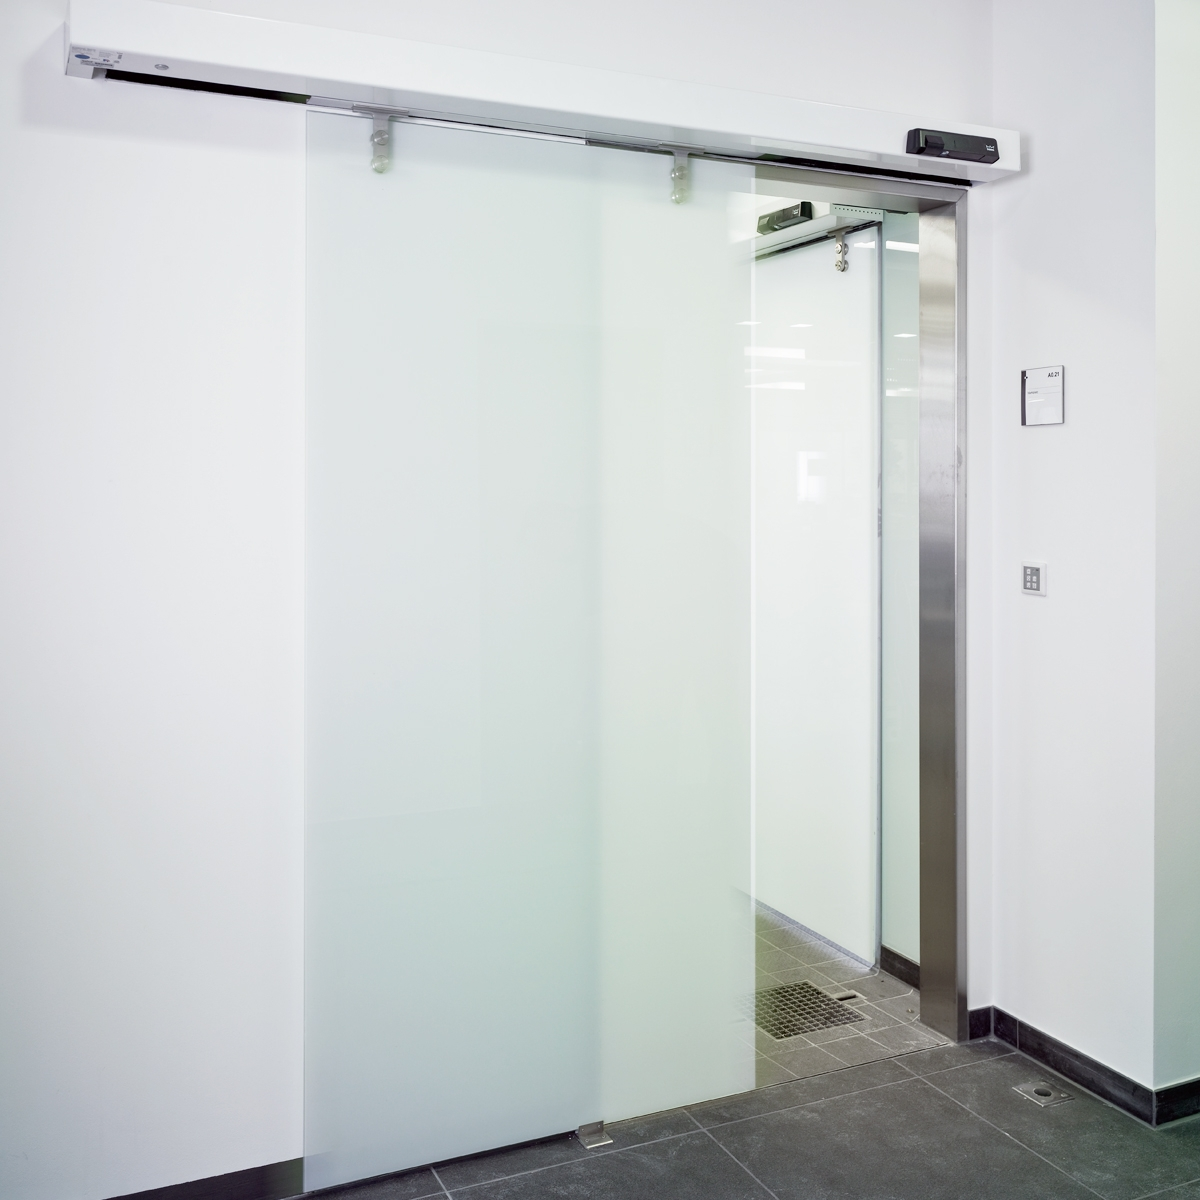 Dorma Glass Sliding Door System